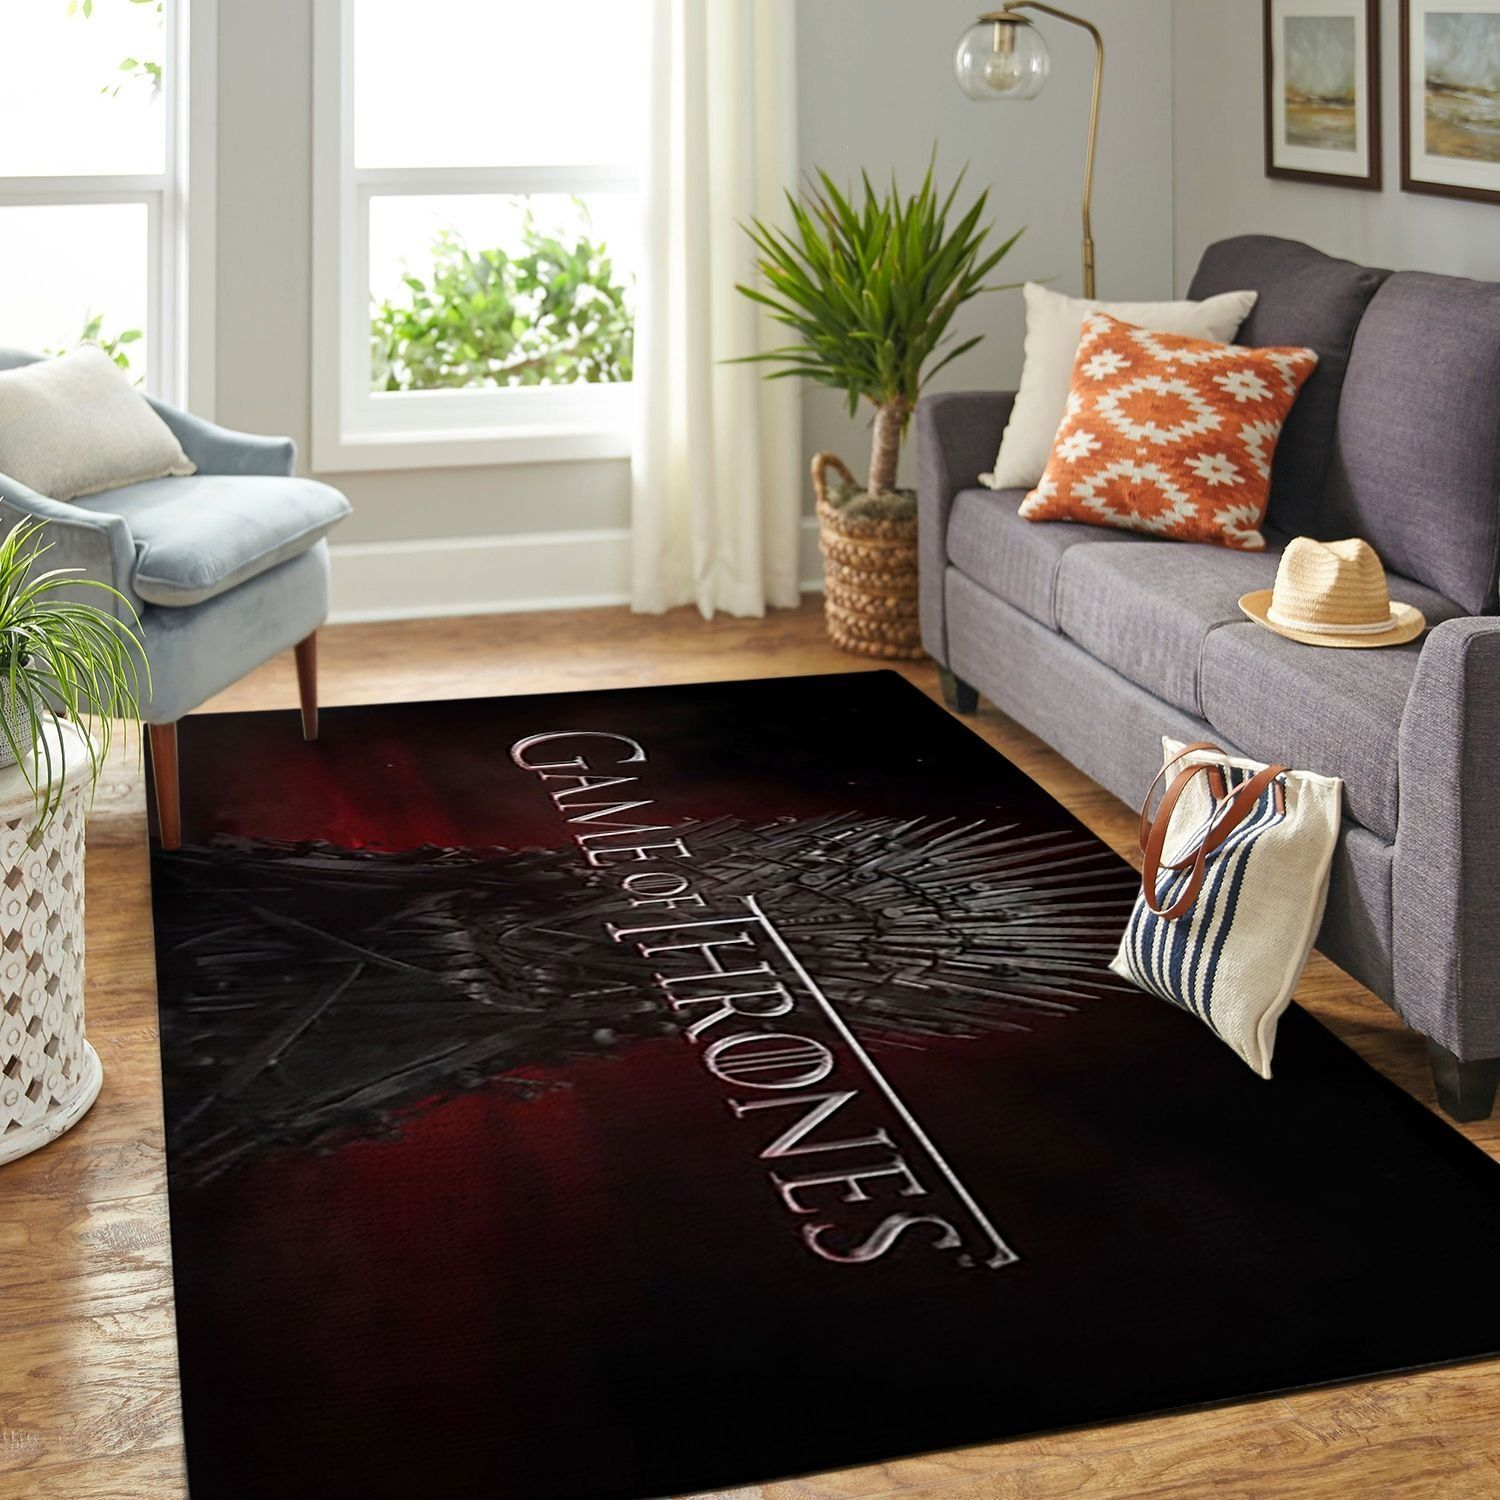 Amazon Game Of Thrones Living Room Area No6104 Rug